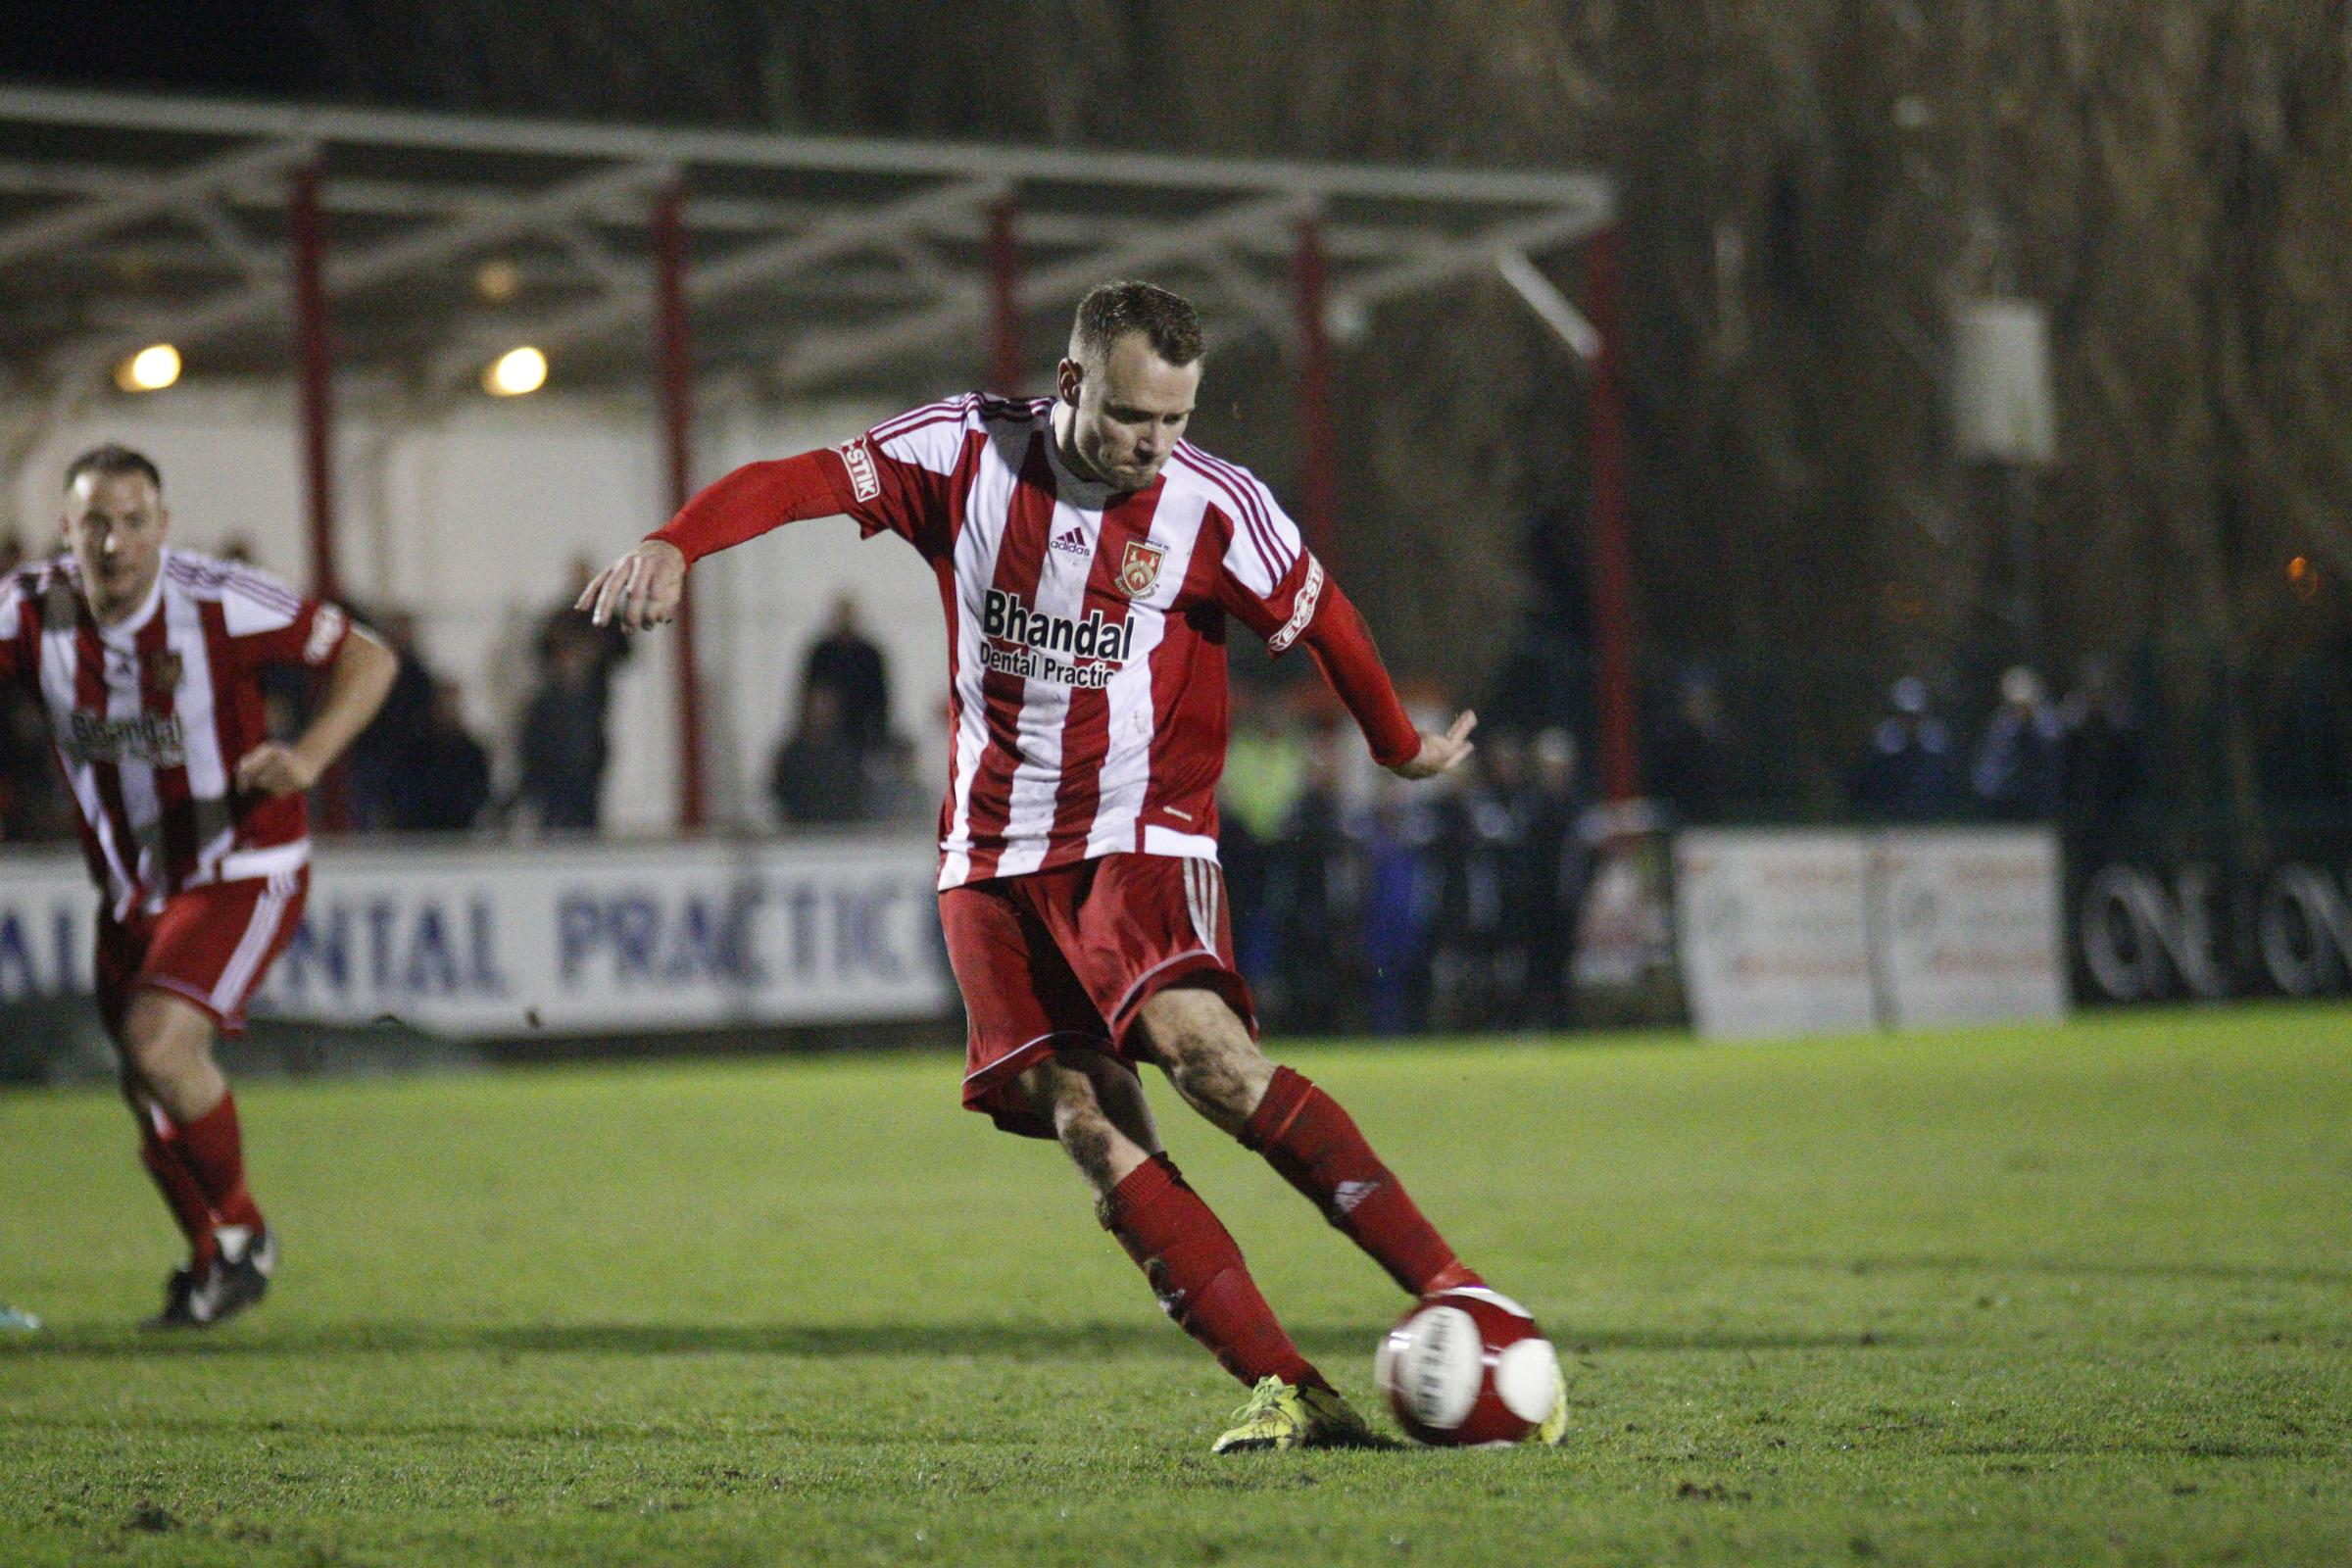 Leon Broadhurst sweeps home from the penalty spot. Photo by Andrew Roper